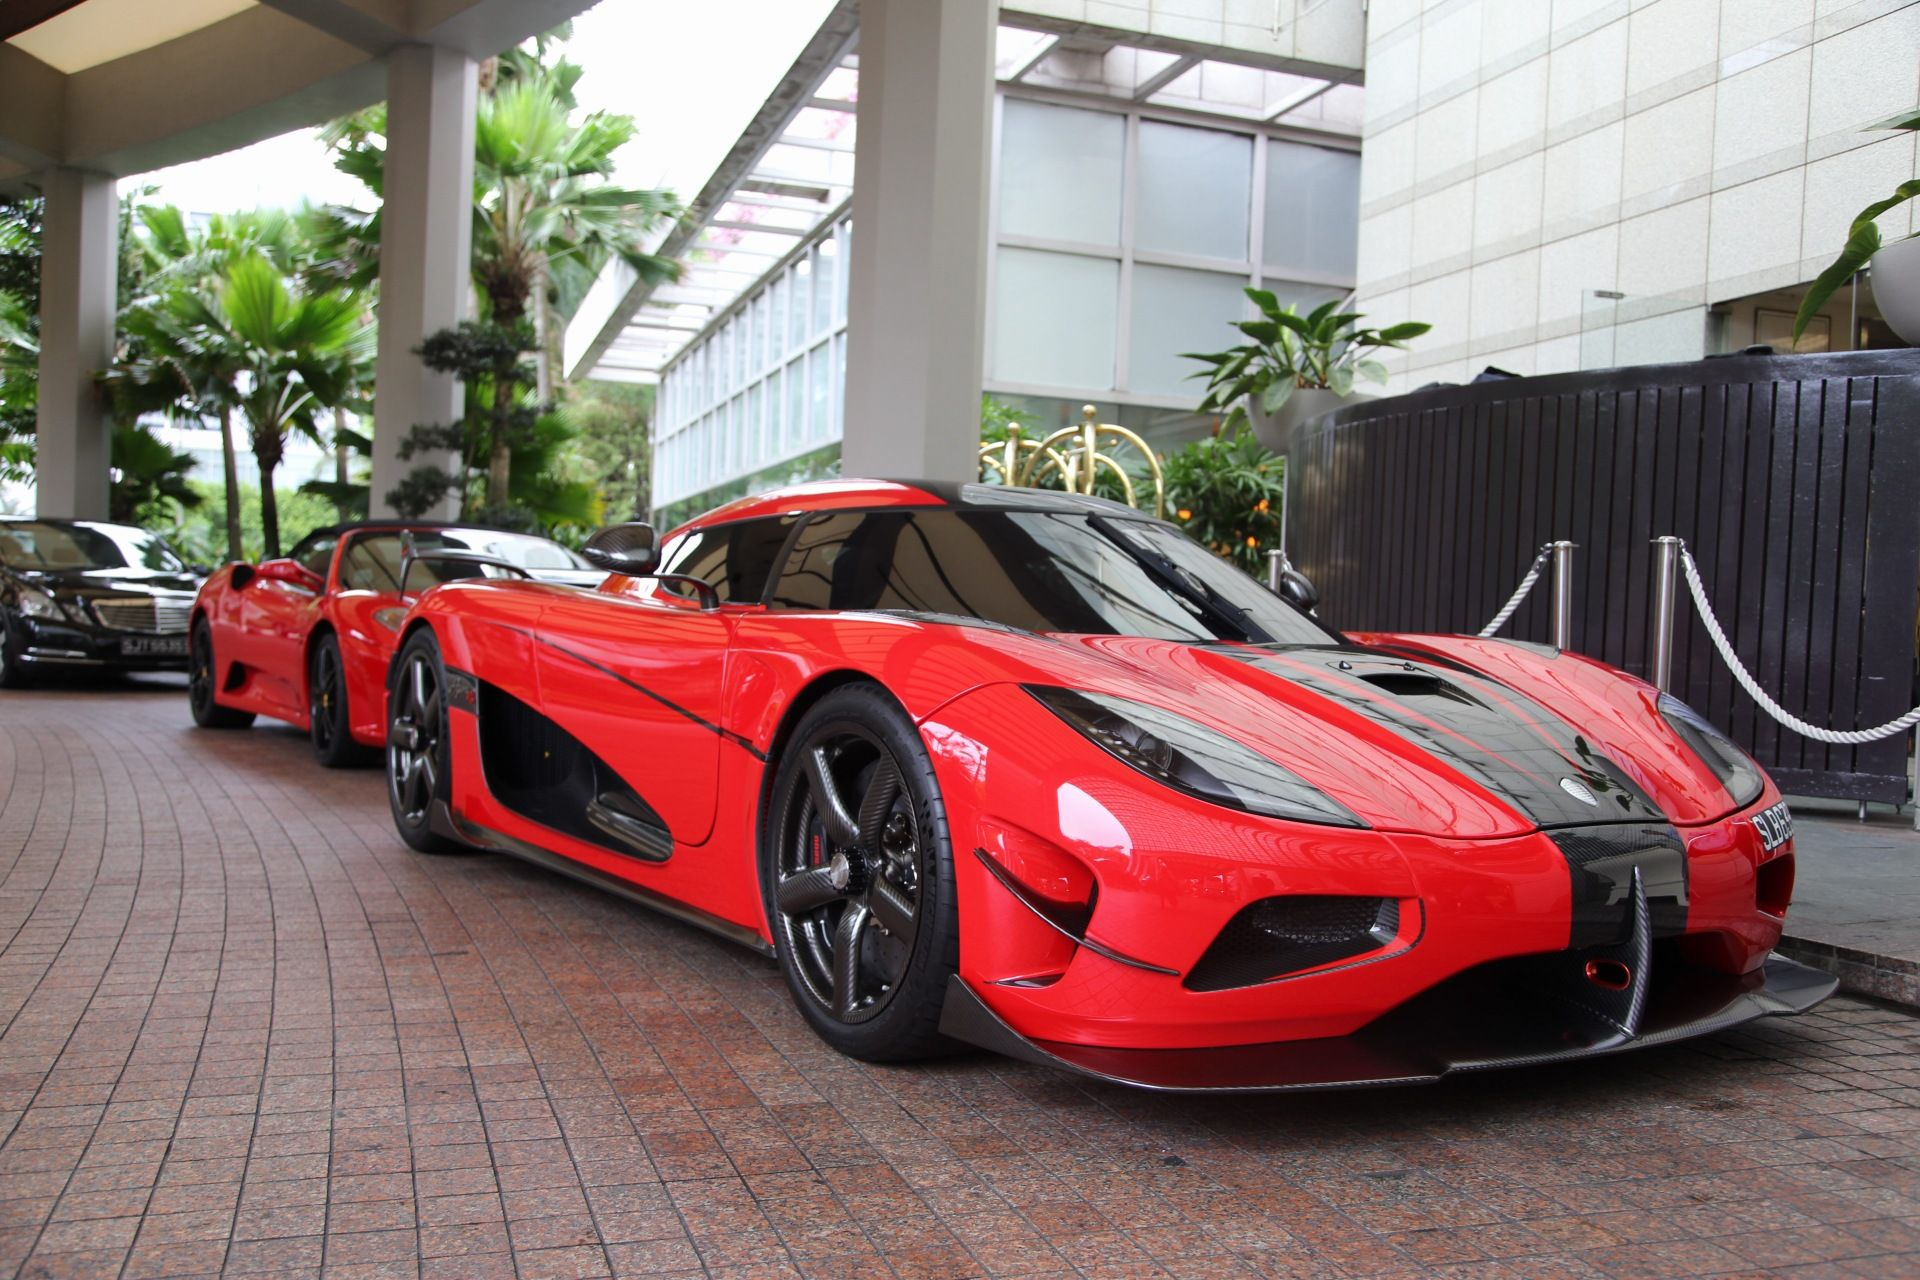 125 Koenigsegg Agera RS In Singapore HD Wallpaper From Gallsource.com